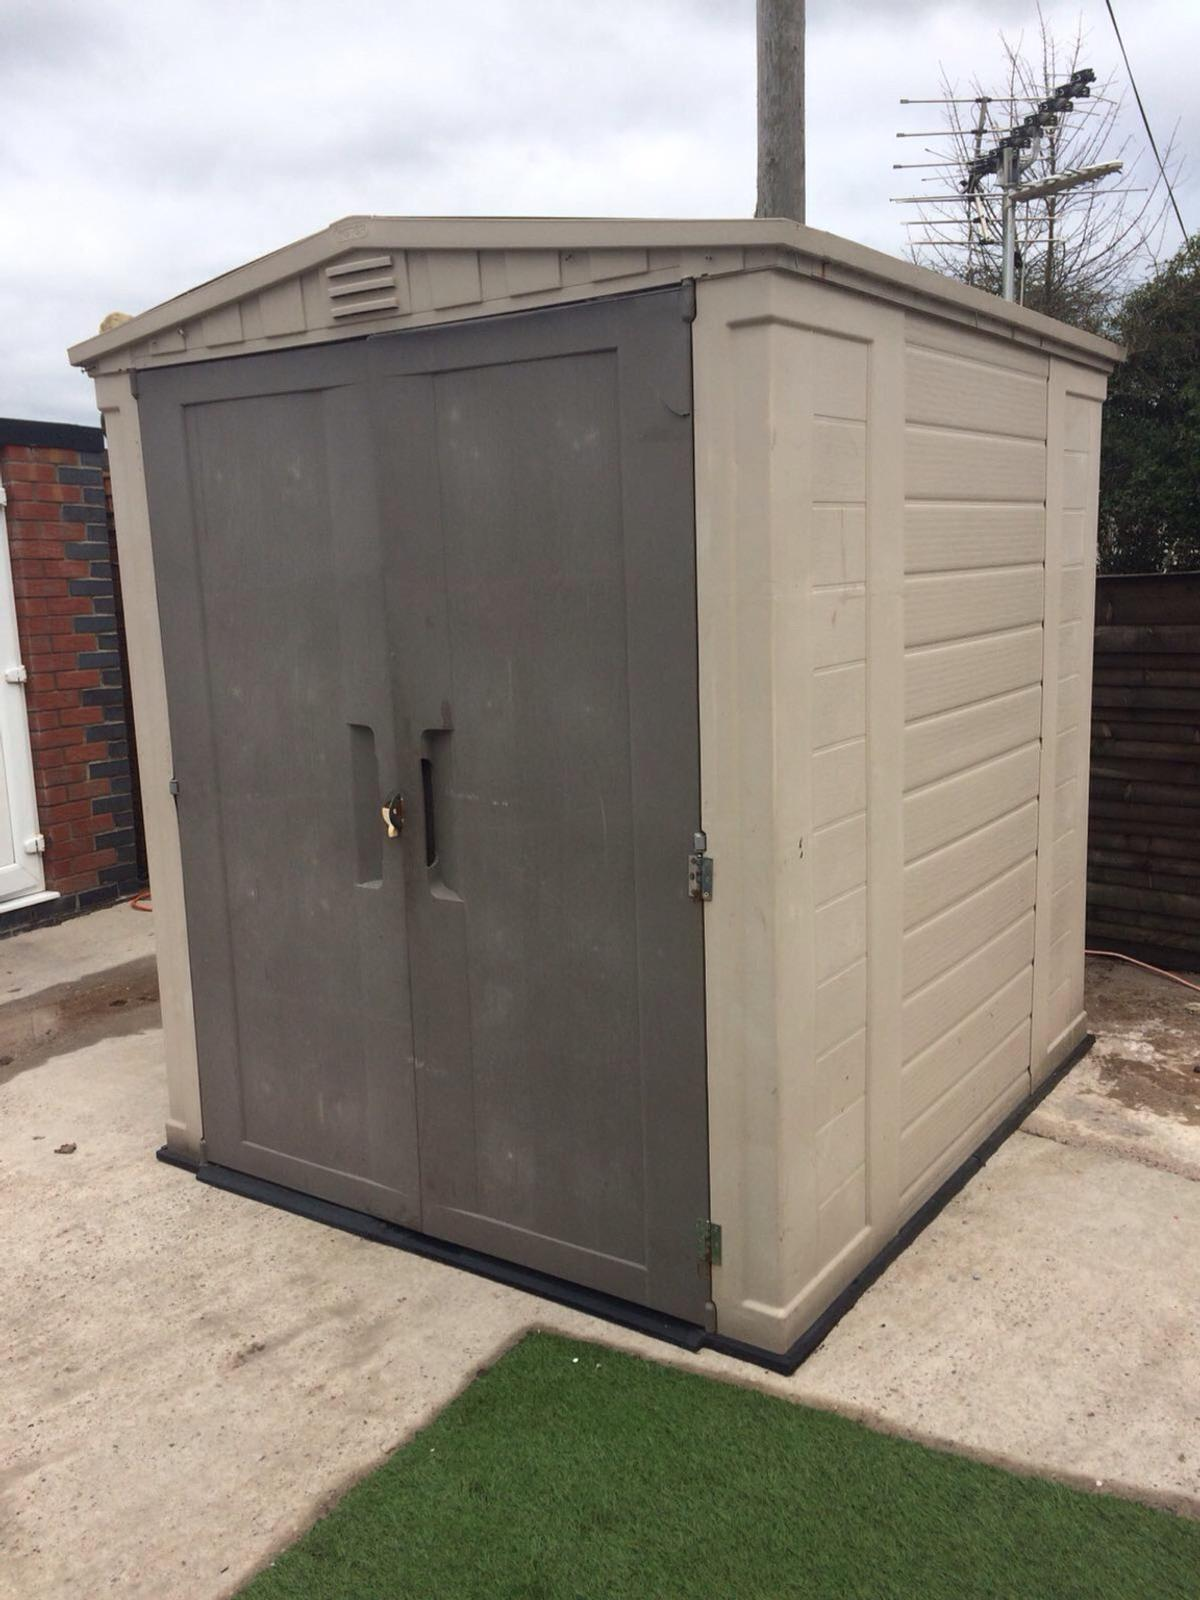 Keter 6x6 Shed 120 In Lancaster For 120 00 For Sale Shpock